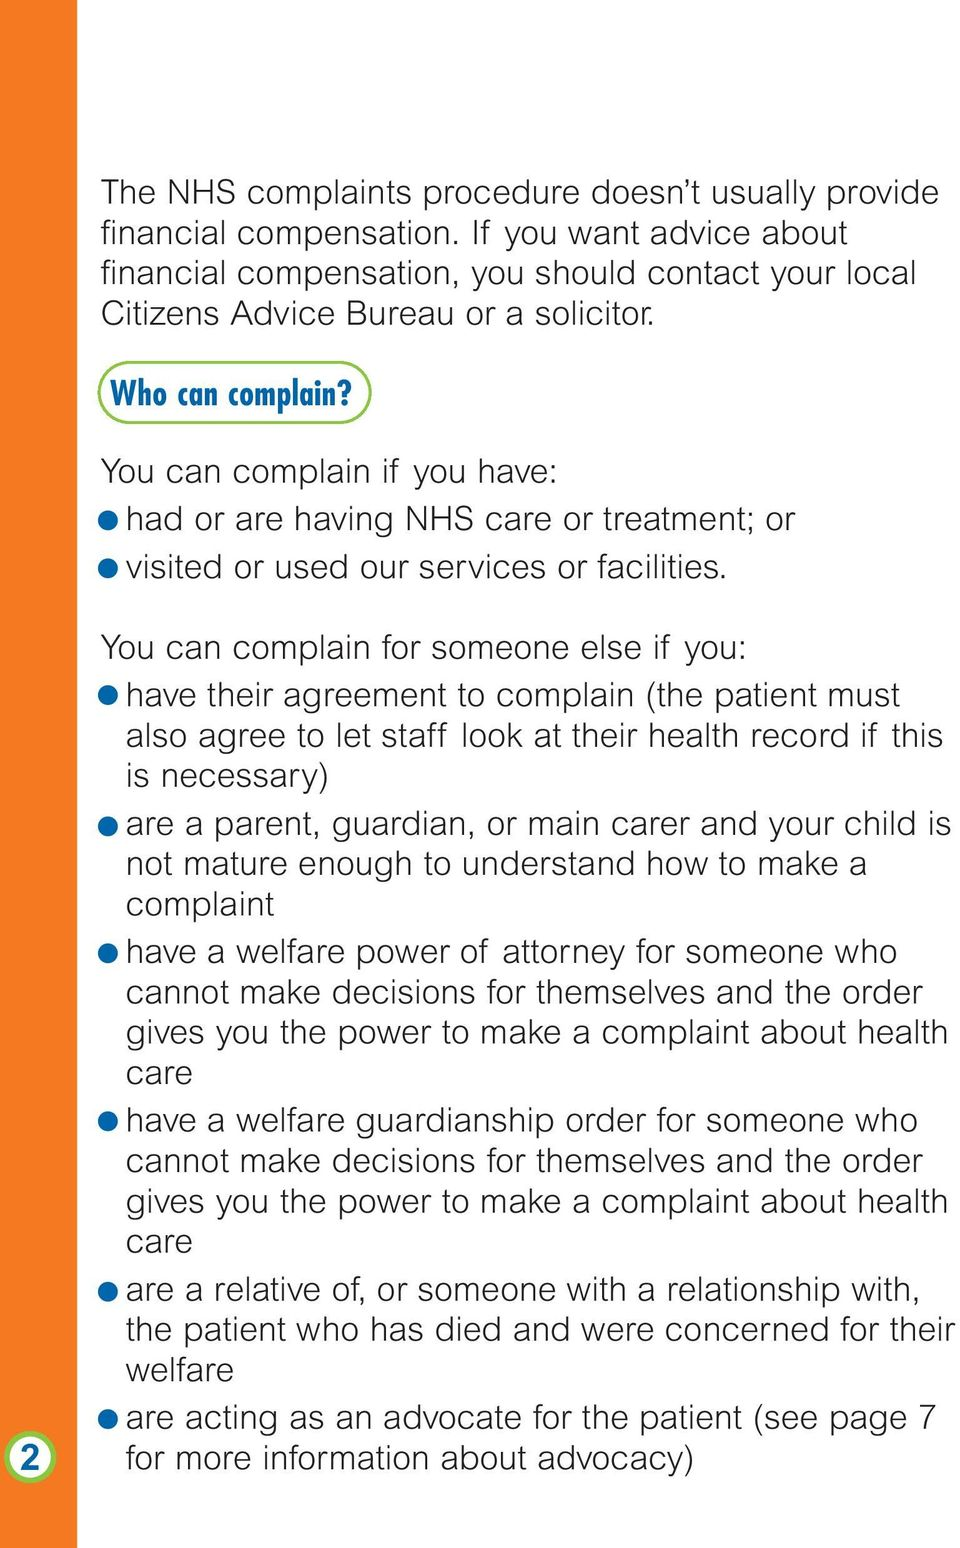 2 You can complain for someone else if you: have their agreement to complain (the patient must also agree to let staff look at their health record if this is necessary) are a parent, guardian, or